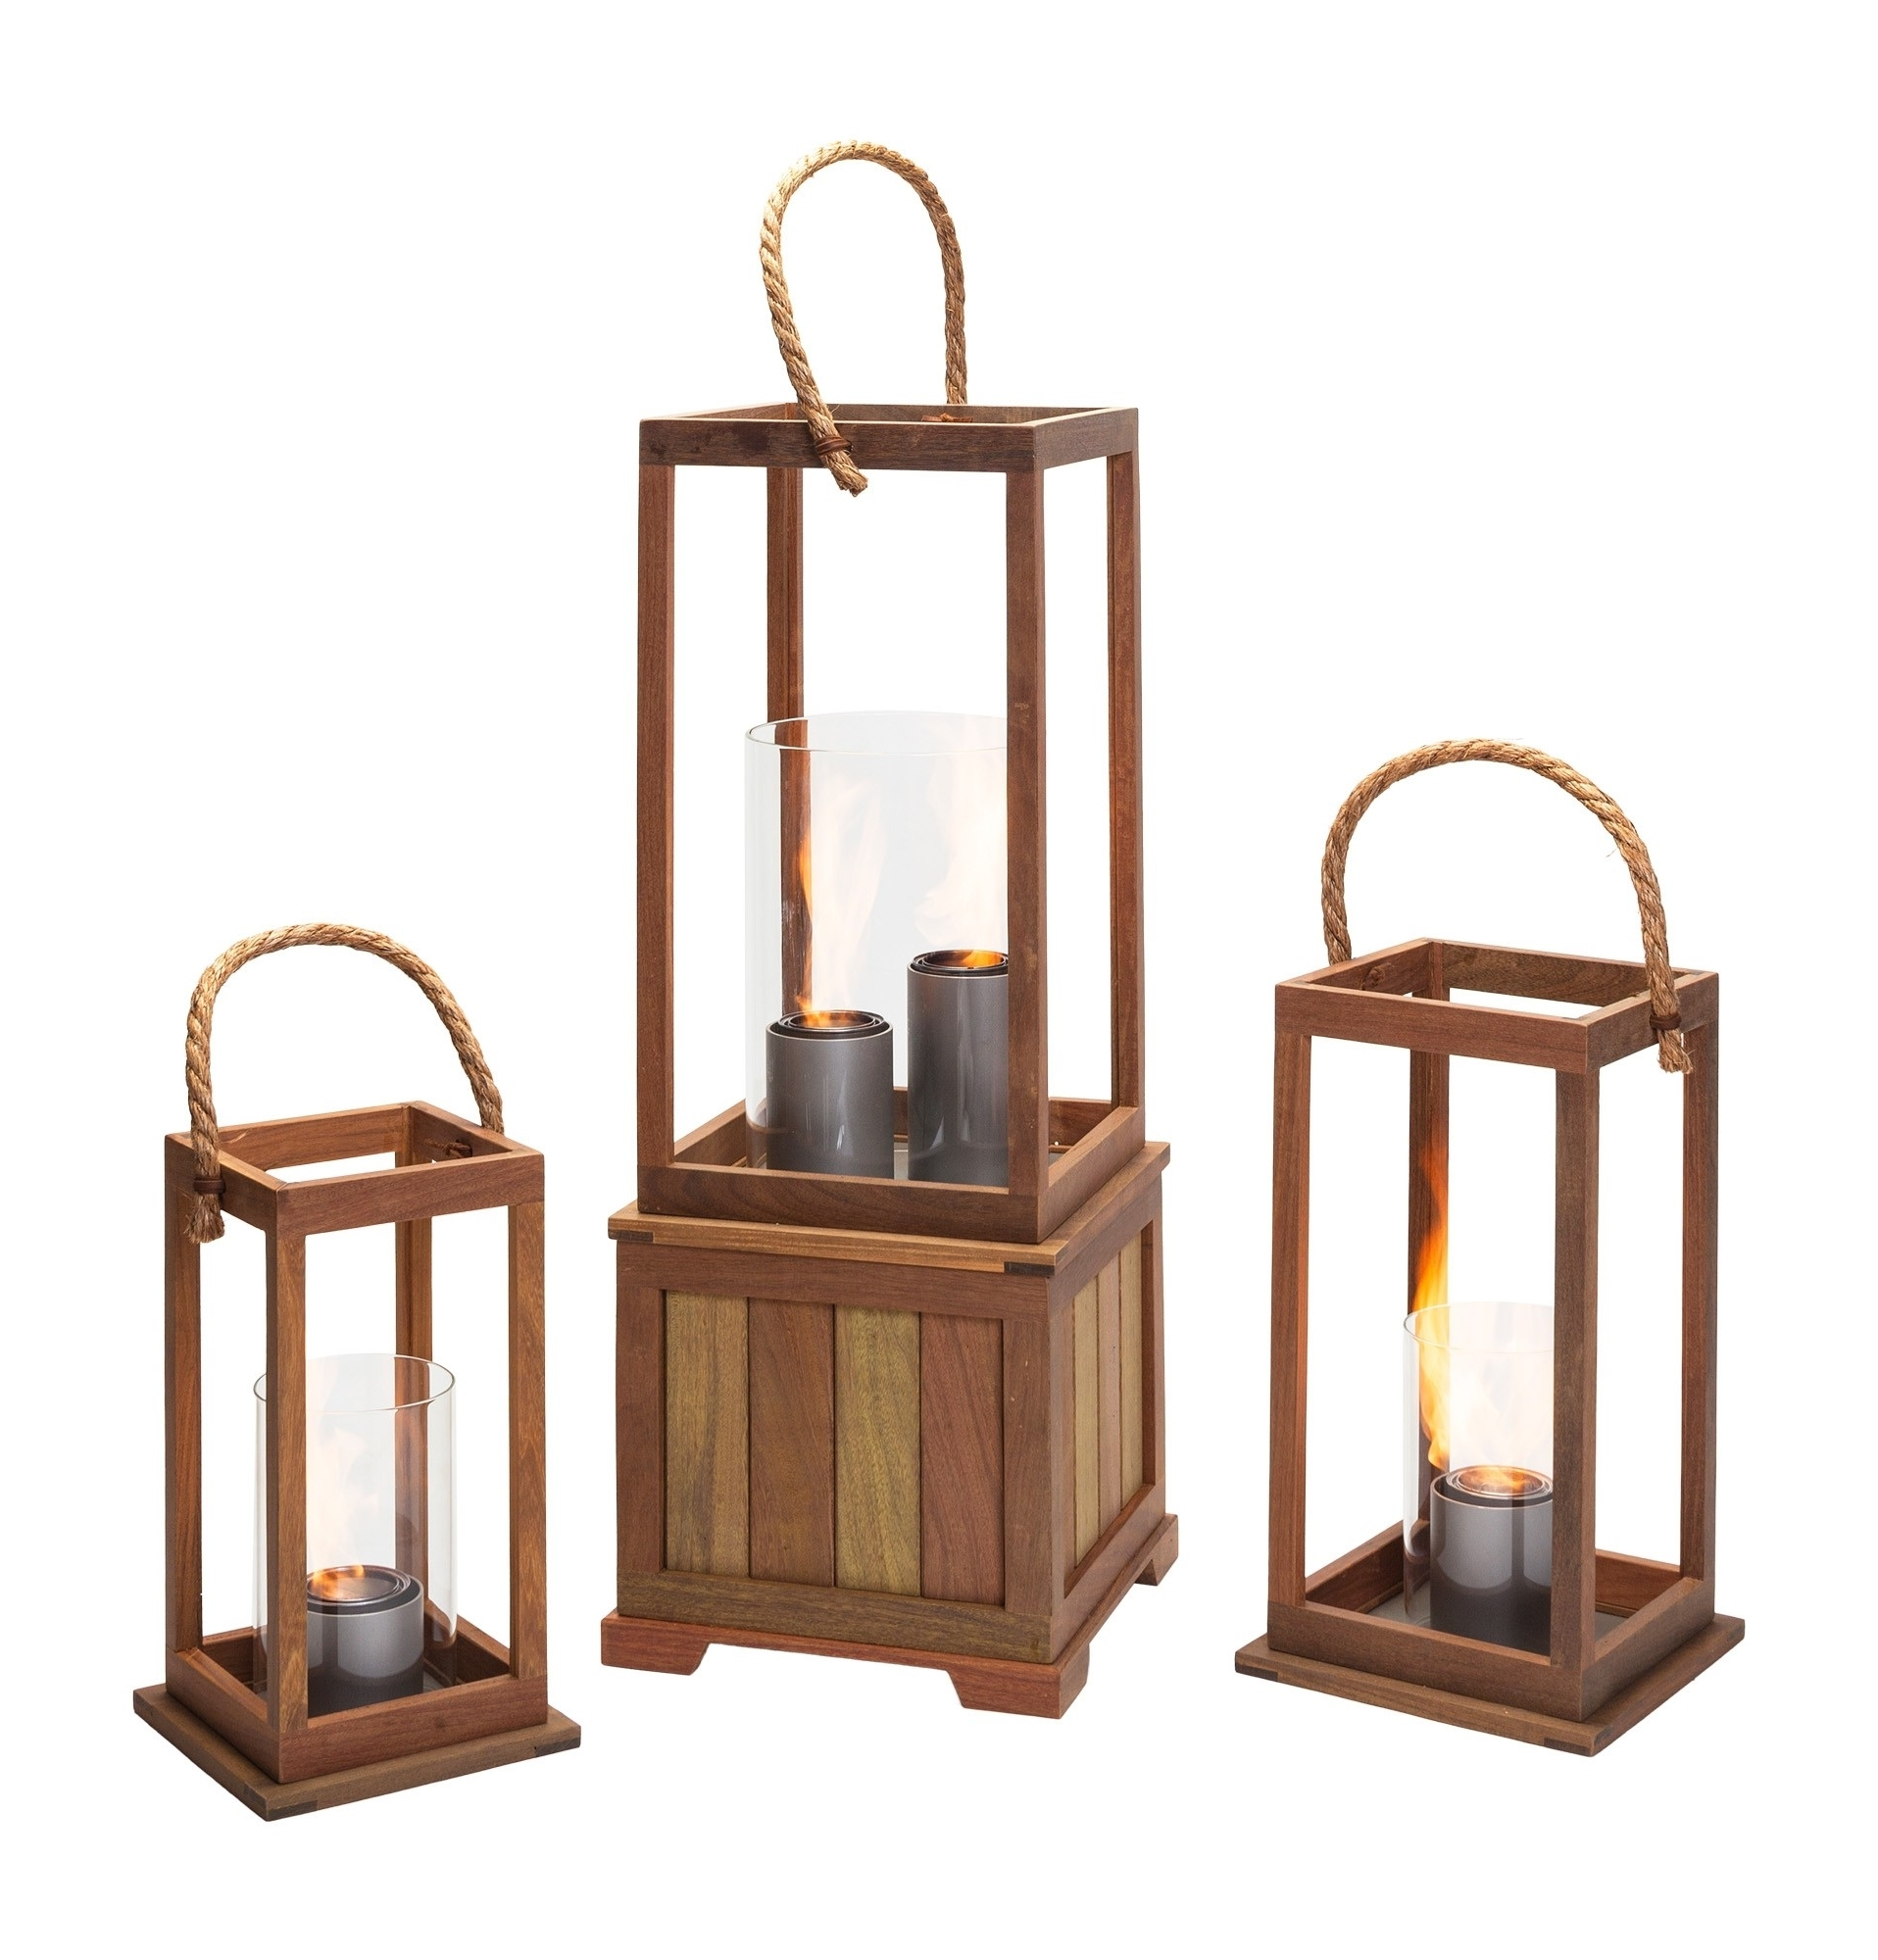 Outdoor Gel Lanterns Within Most Recent Sonoma 17 Inch Outdoor Lantern In Ipe Woodnorthcape Fire (View 5 of 20)